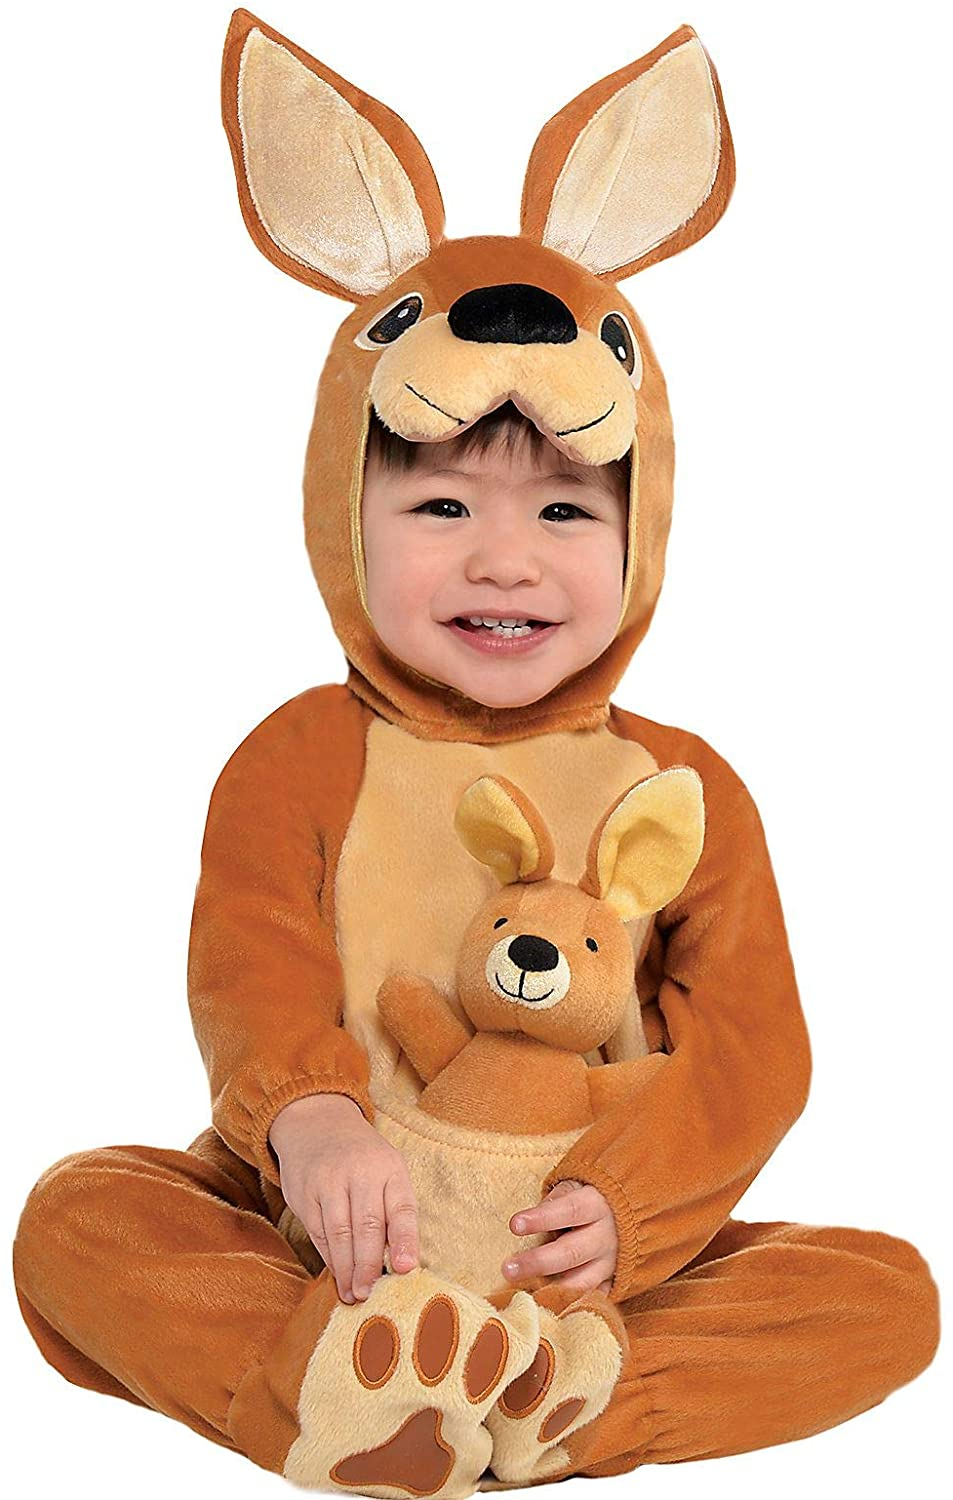 Suit Yourself Jumpin' Joey Kangaroo Halloween Costume for Babies, Includes Accessories